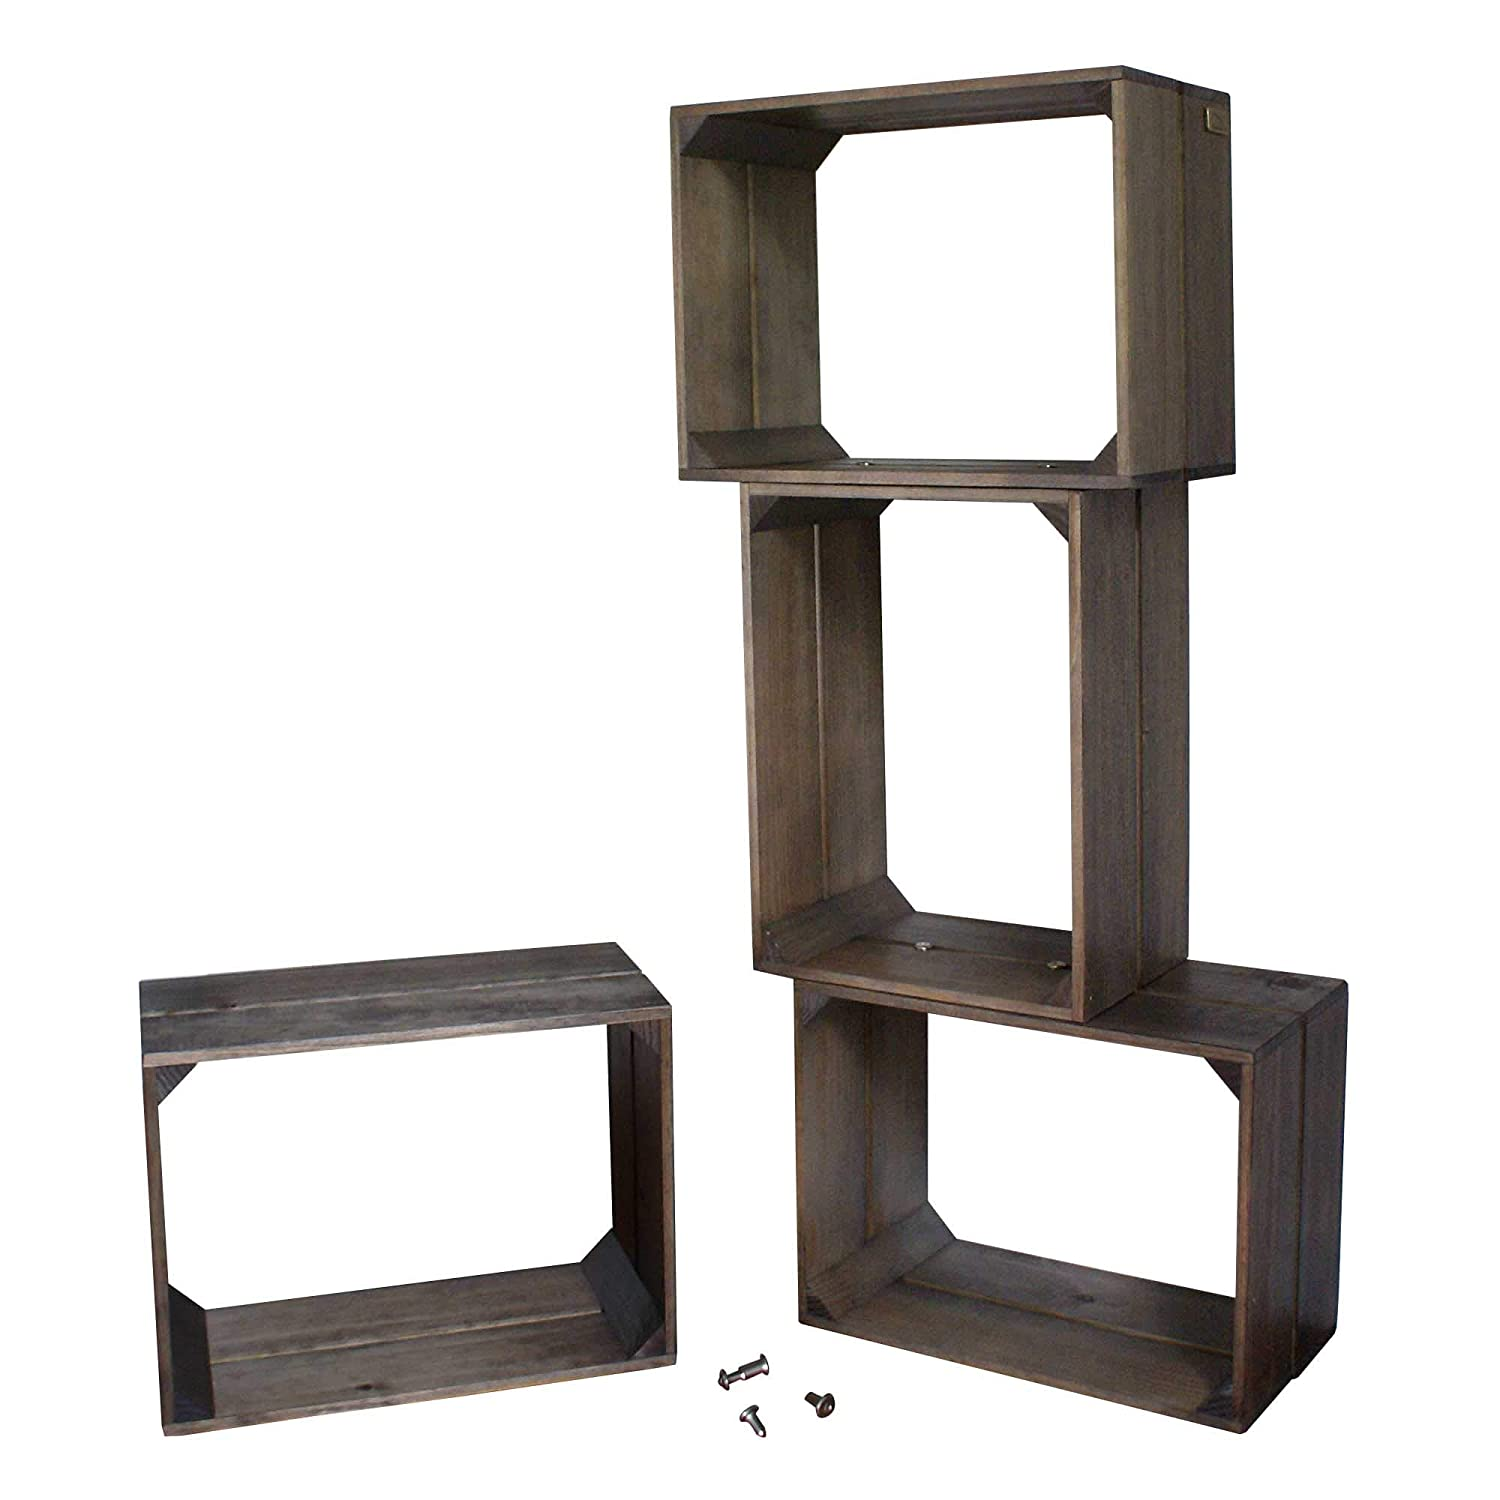 Liza Line Modular Shelving Unit With 4 Wooden Shelves, Vintage Crate Style  Bookcase Storage Display Shelf, Stand With 4 Compartments Solid Pine Wood